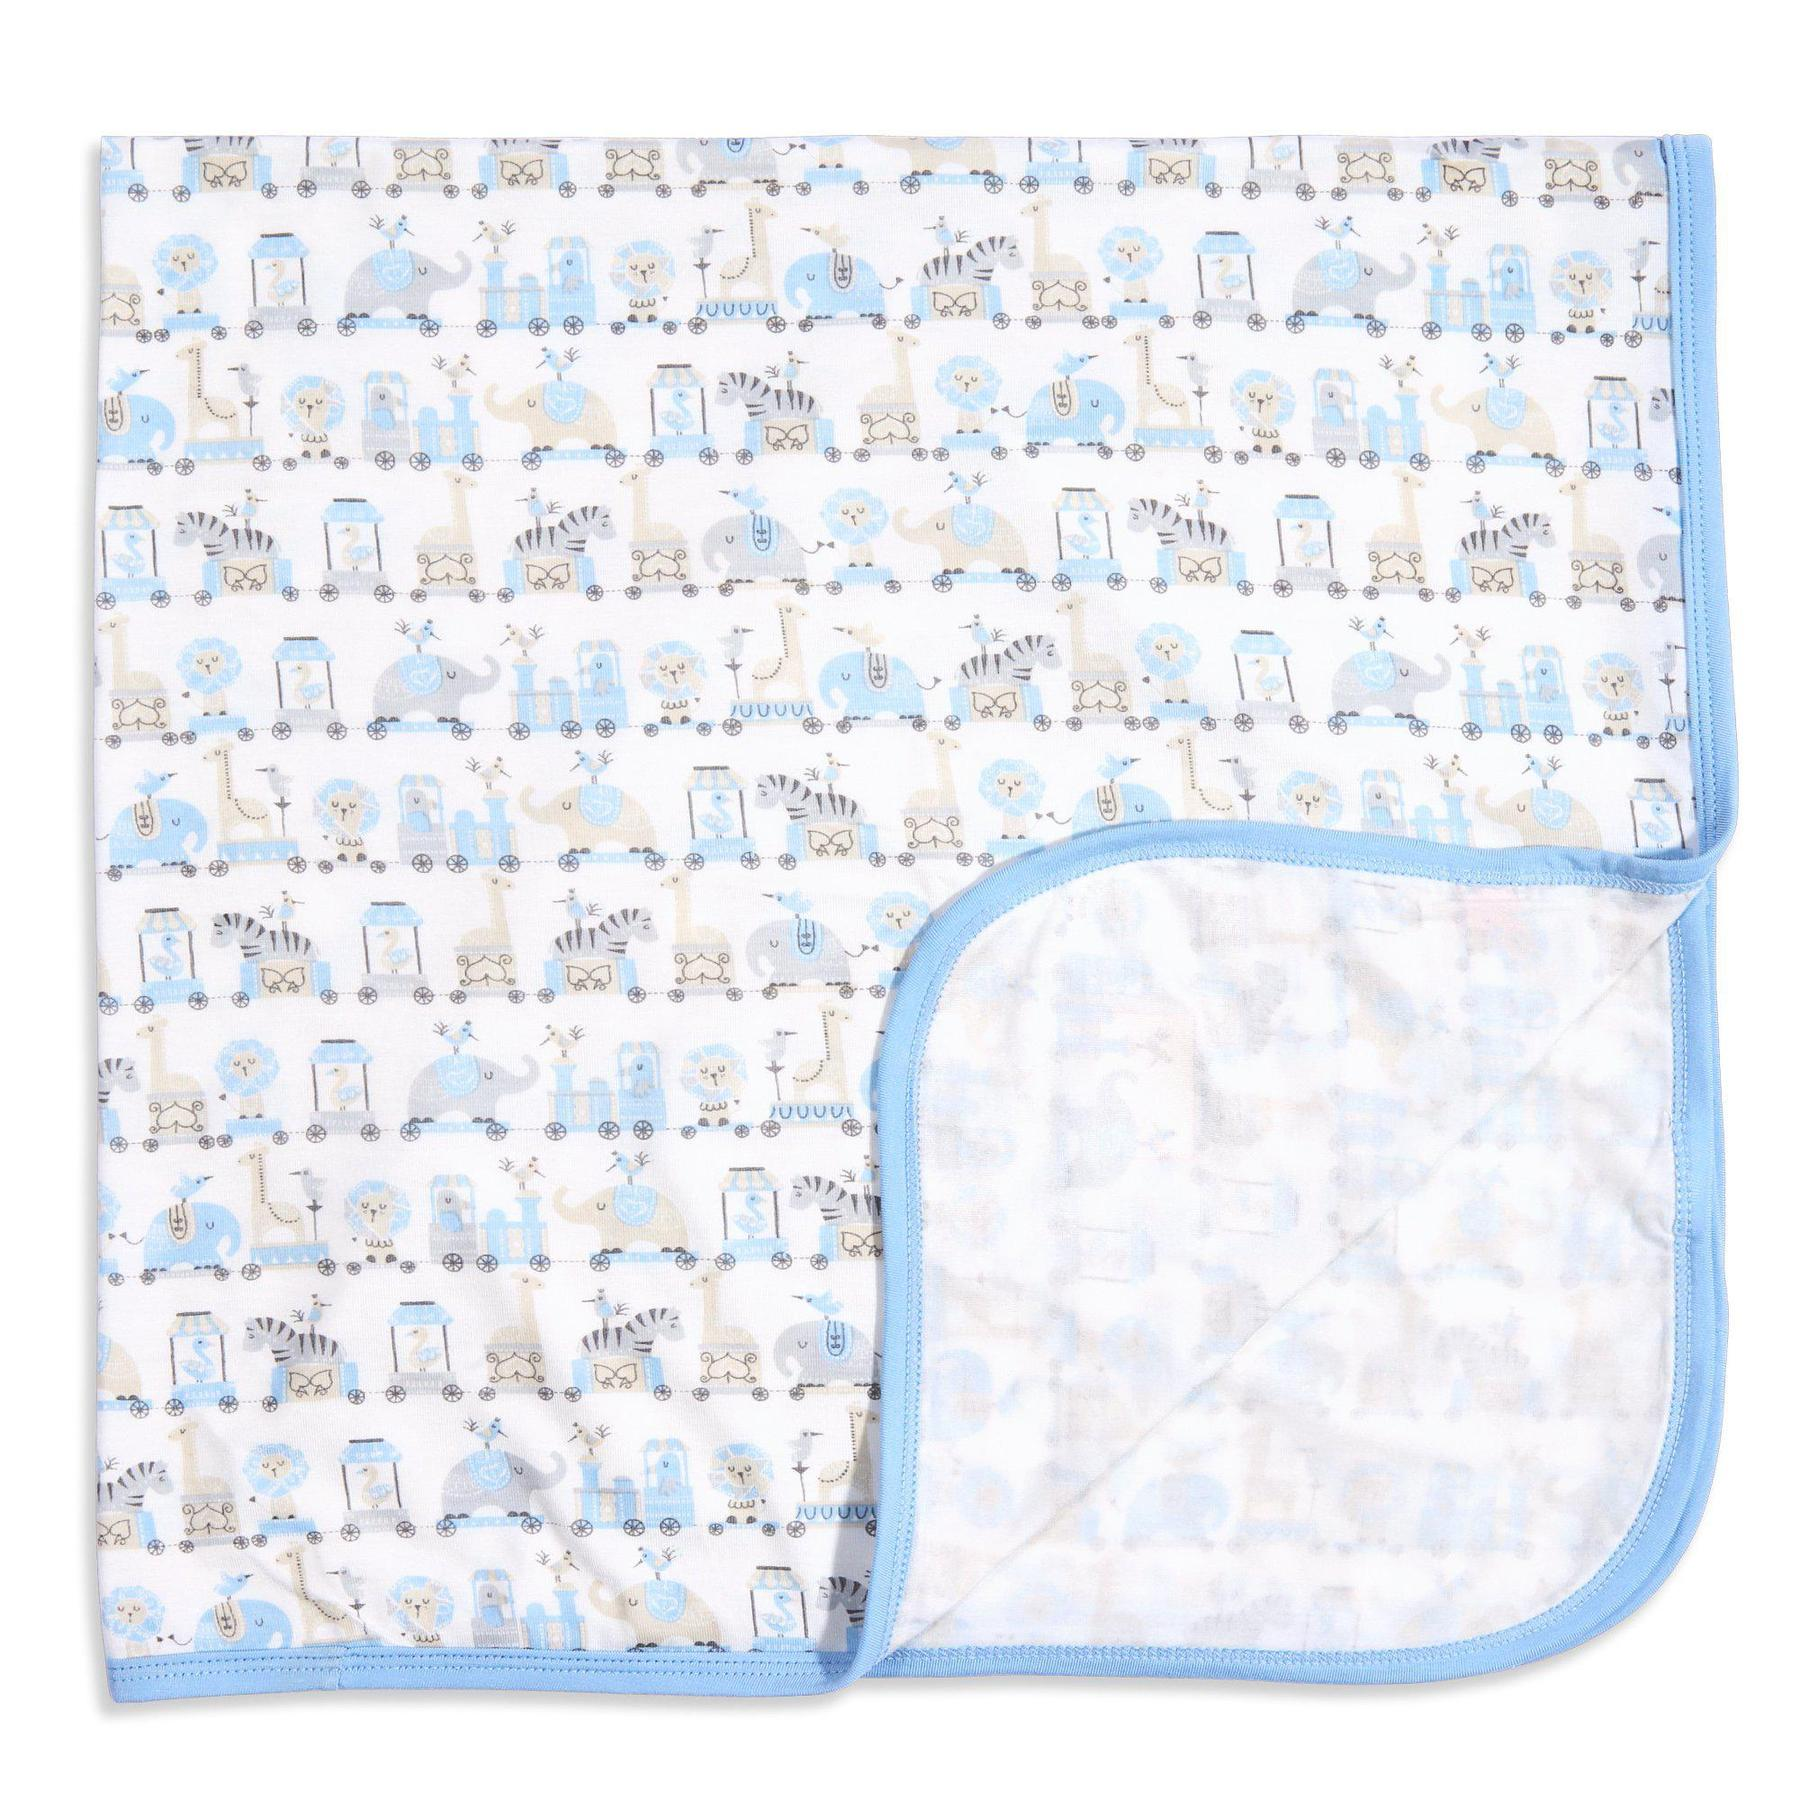 Blue Taj Express Modal Swaddle Blanket